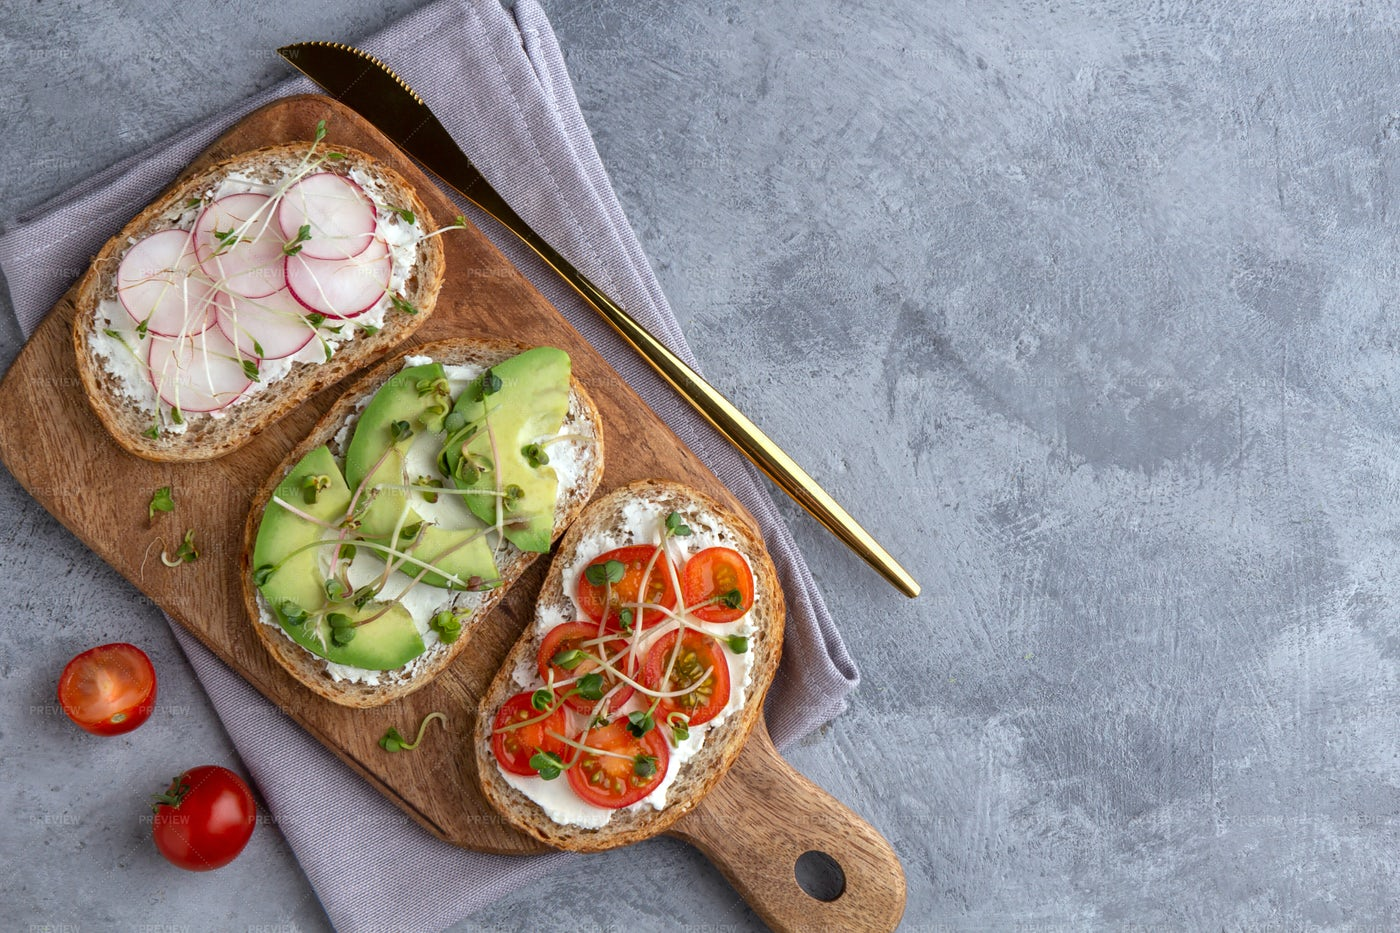 Cutting Board Of Sandwiches: Stock Photos